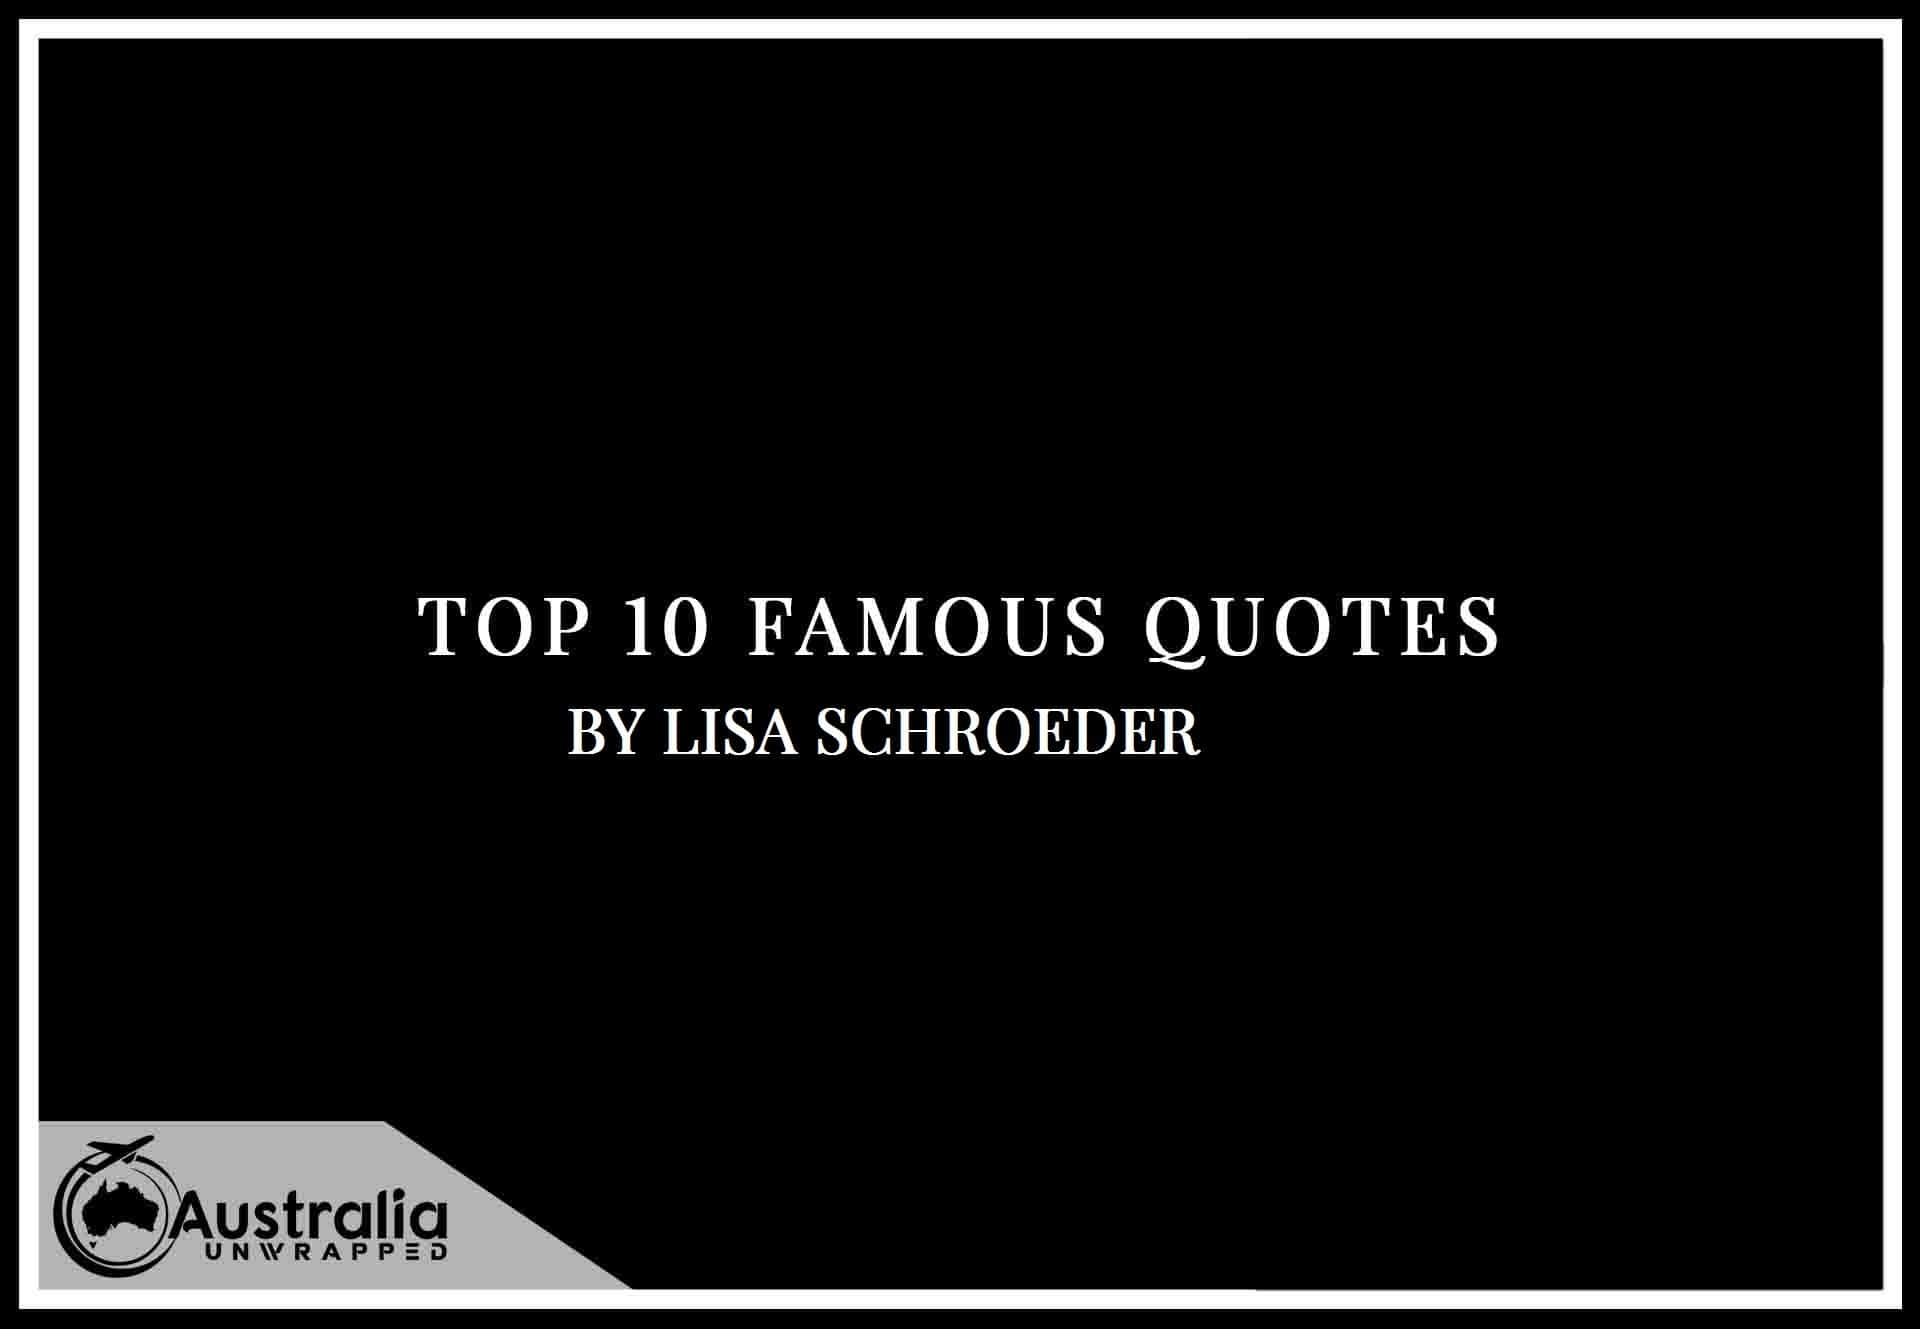 Lisa Schroeder's Top 10 Popular and Famous Quotes